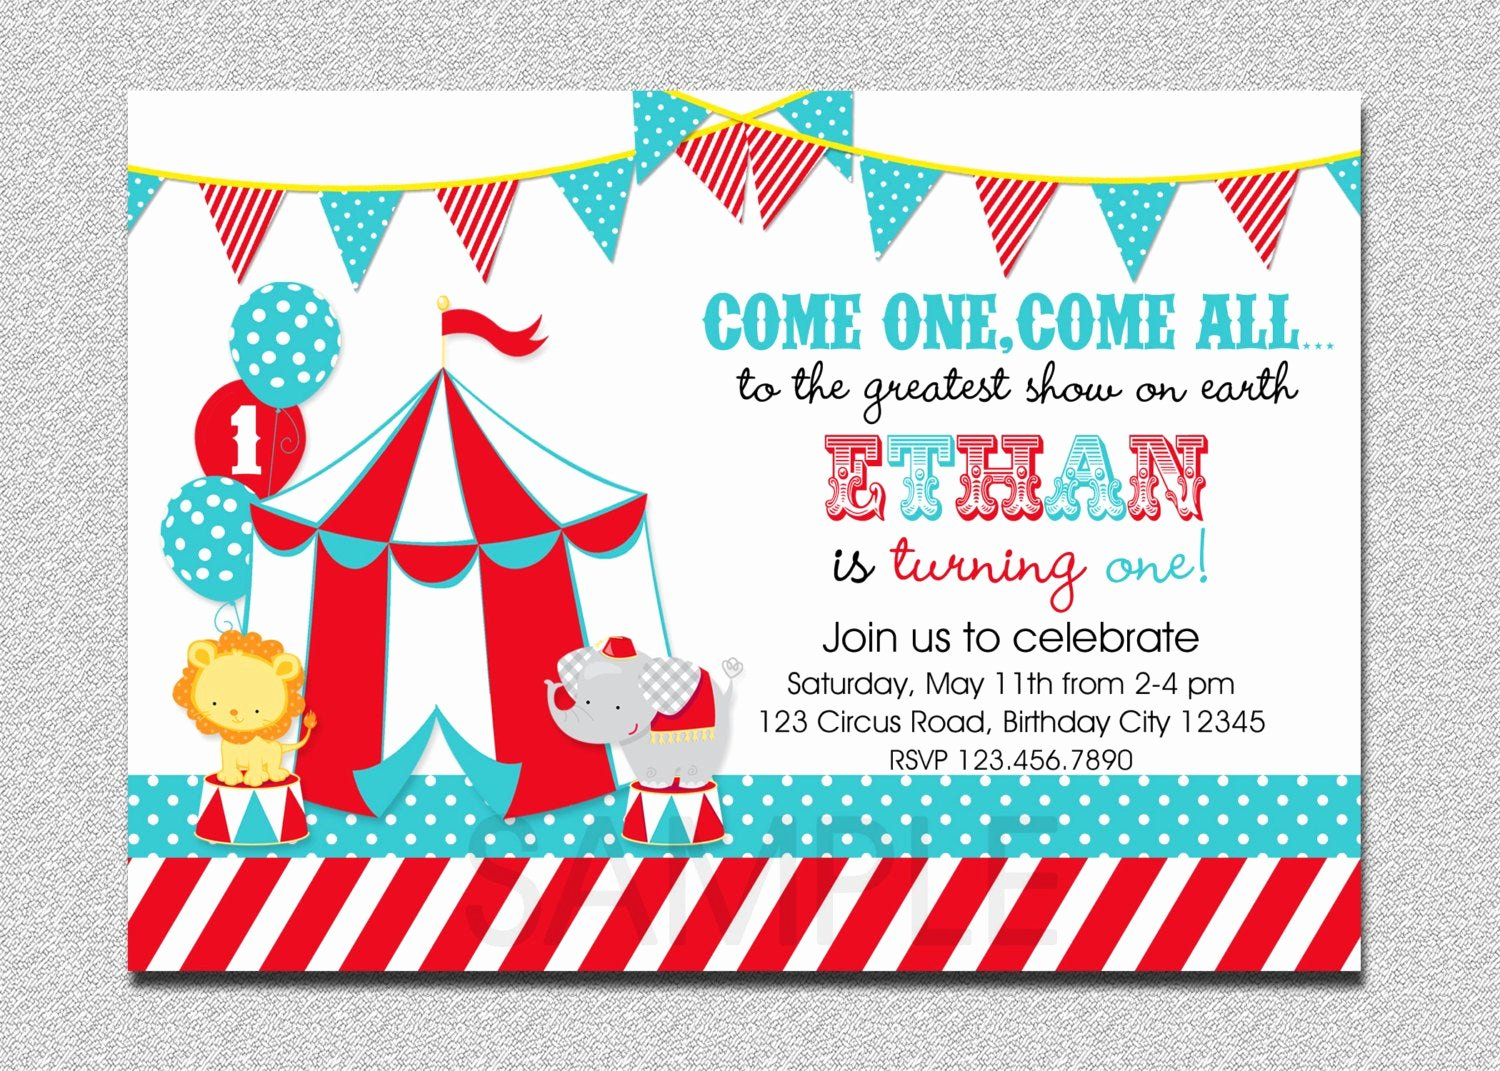 Carnival themed Birthday Invitations Inspirational Carnival Circus Birthday Invitation Circus by thetrendybutterfly